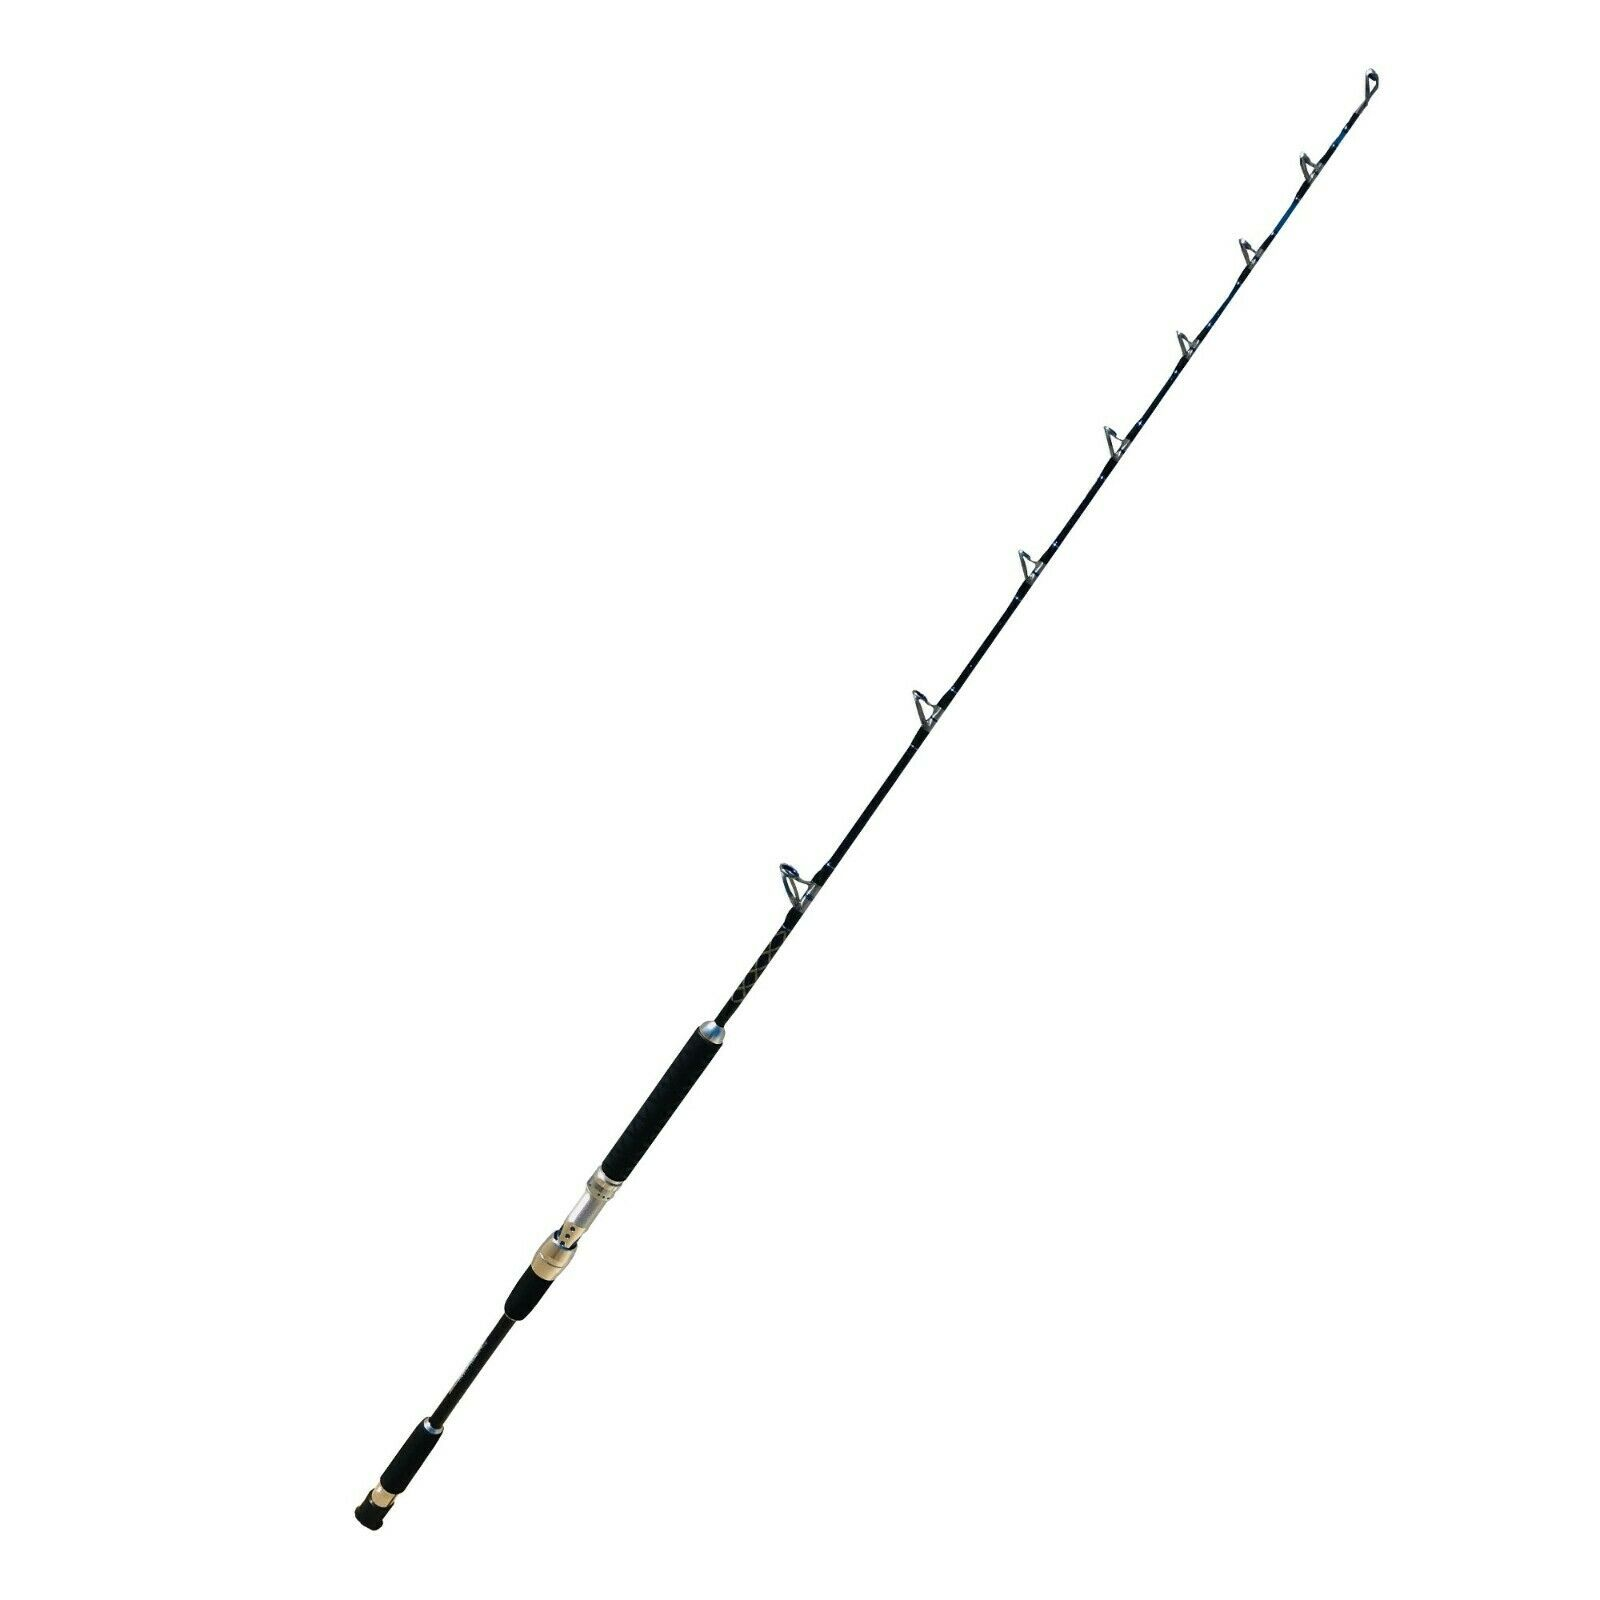 30-50 lb. Big Daddy 2pc. Saltwater Jigging  Rod BOGO  BUY 1 GET 1 FREE   exciting promotions